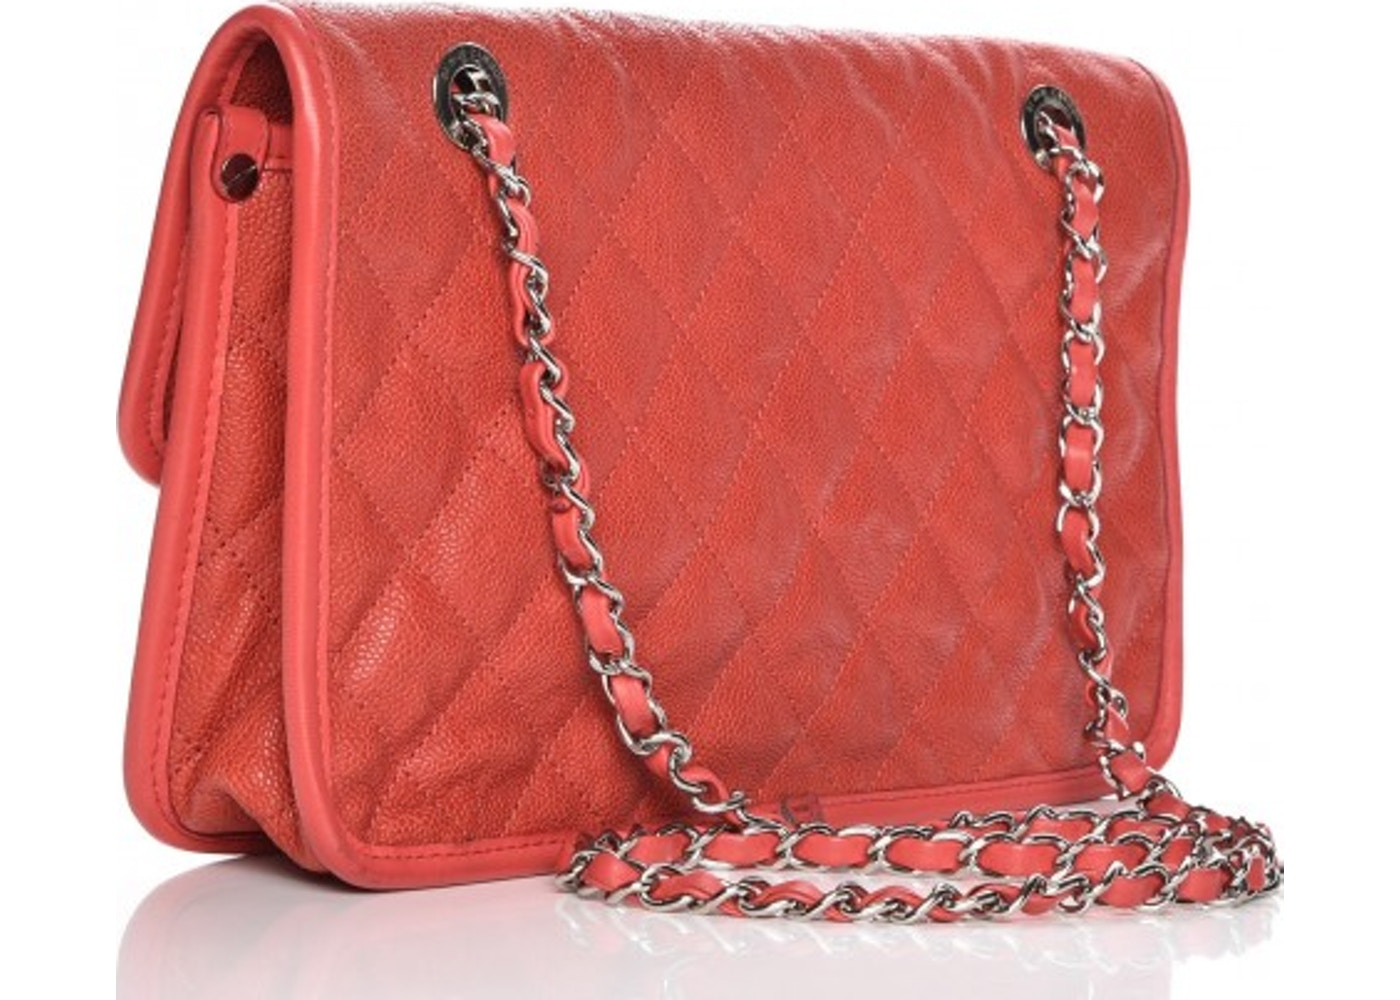 12859d51e98fa1 Chanel Flap French Riviera Quilted Medium Red